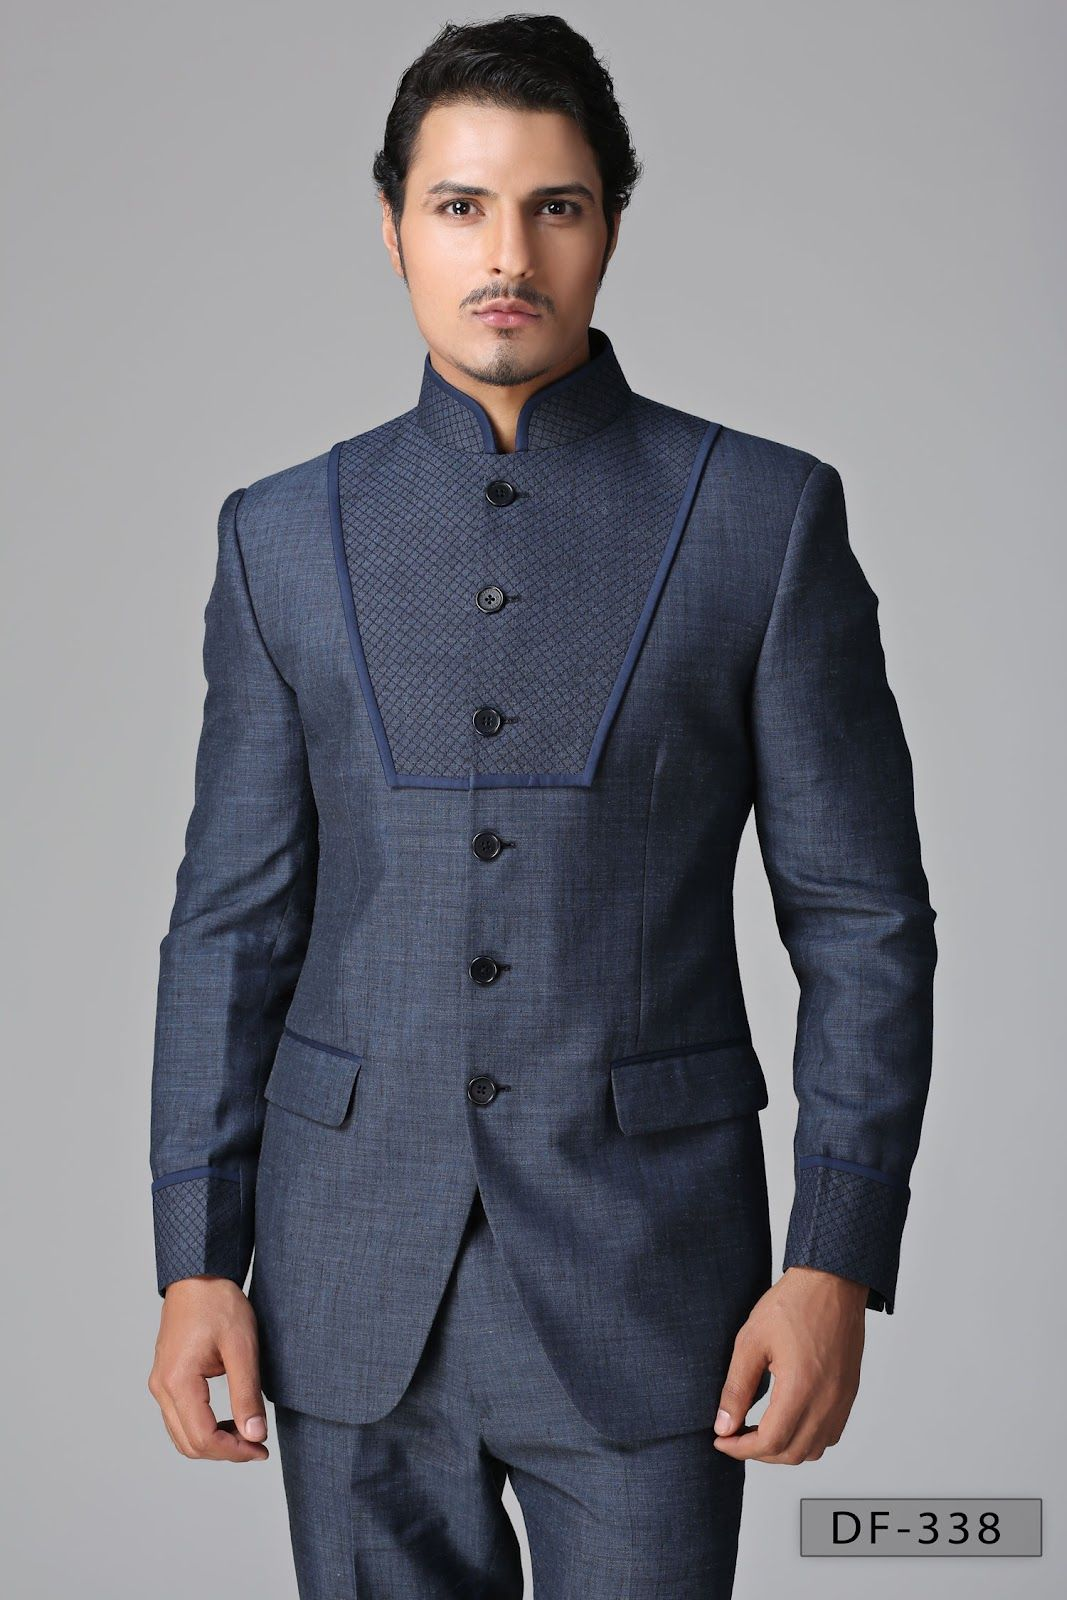 433fec2477df Men #Suit - - Looks like something in The Matrix!! | Men clothing ...